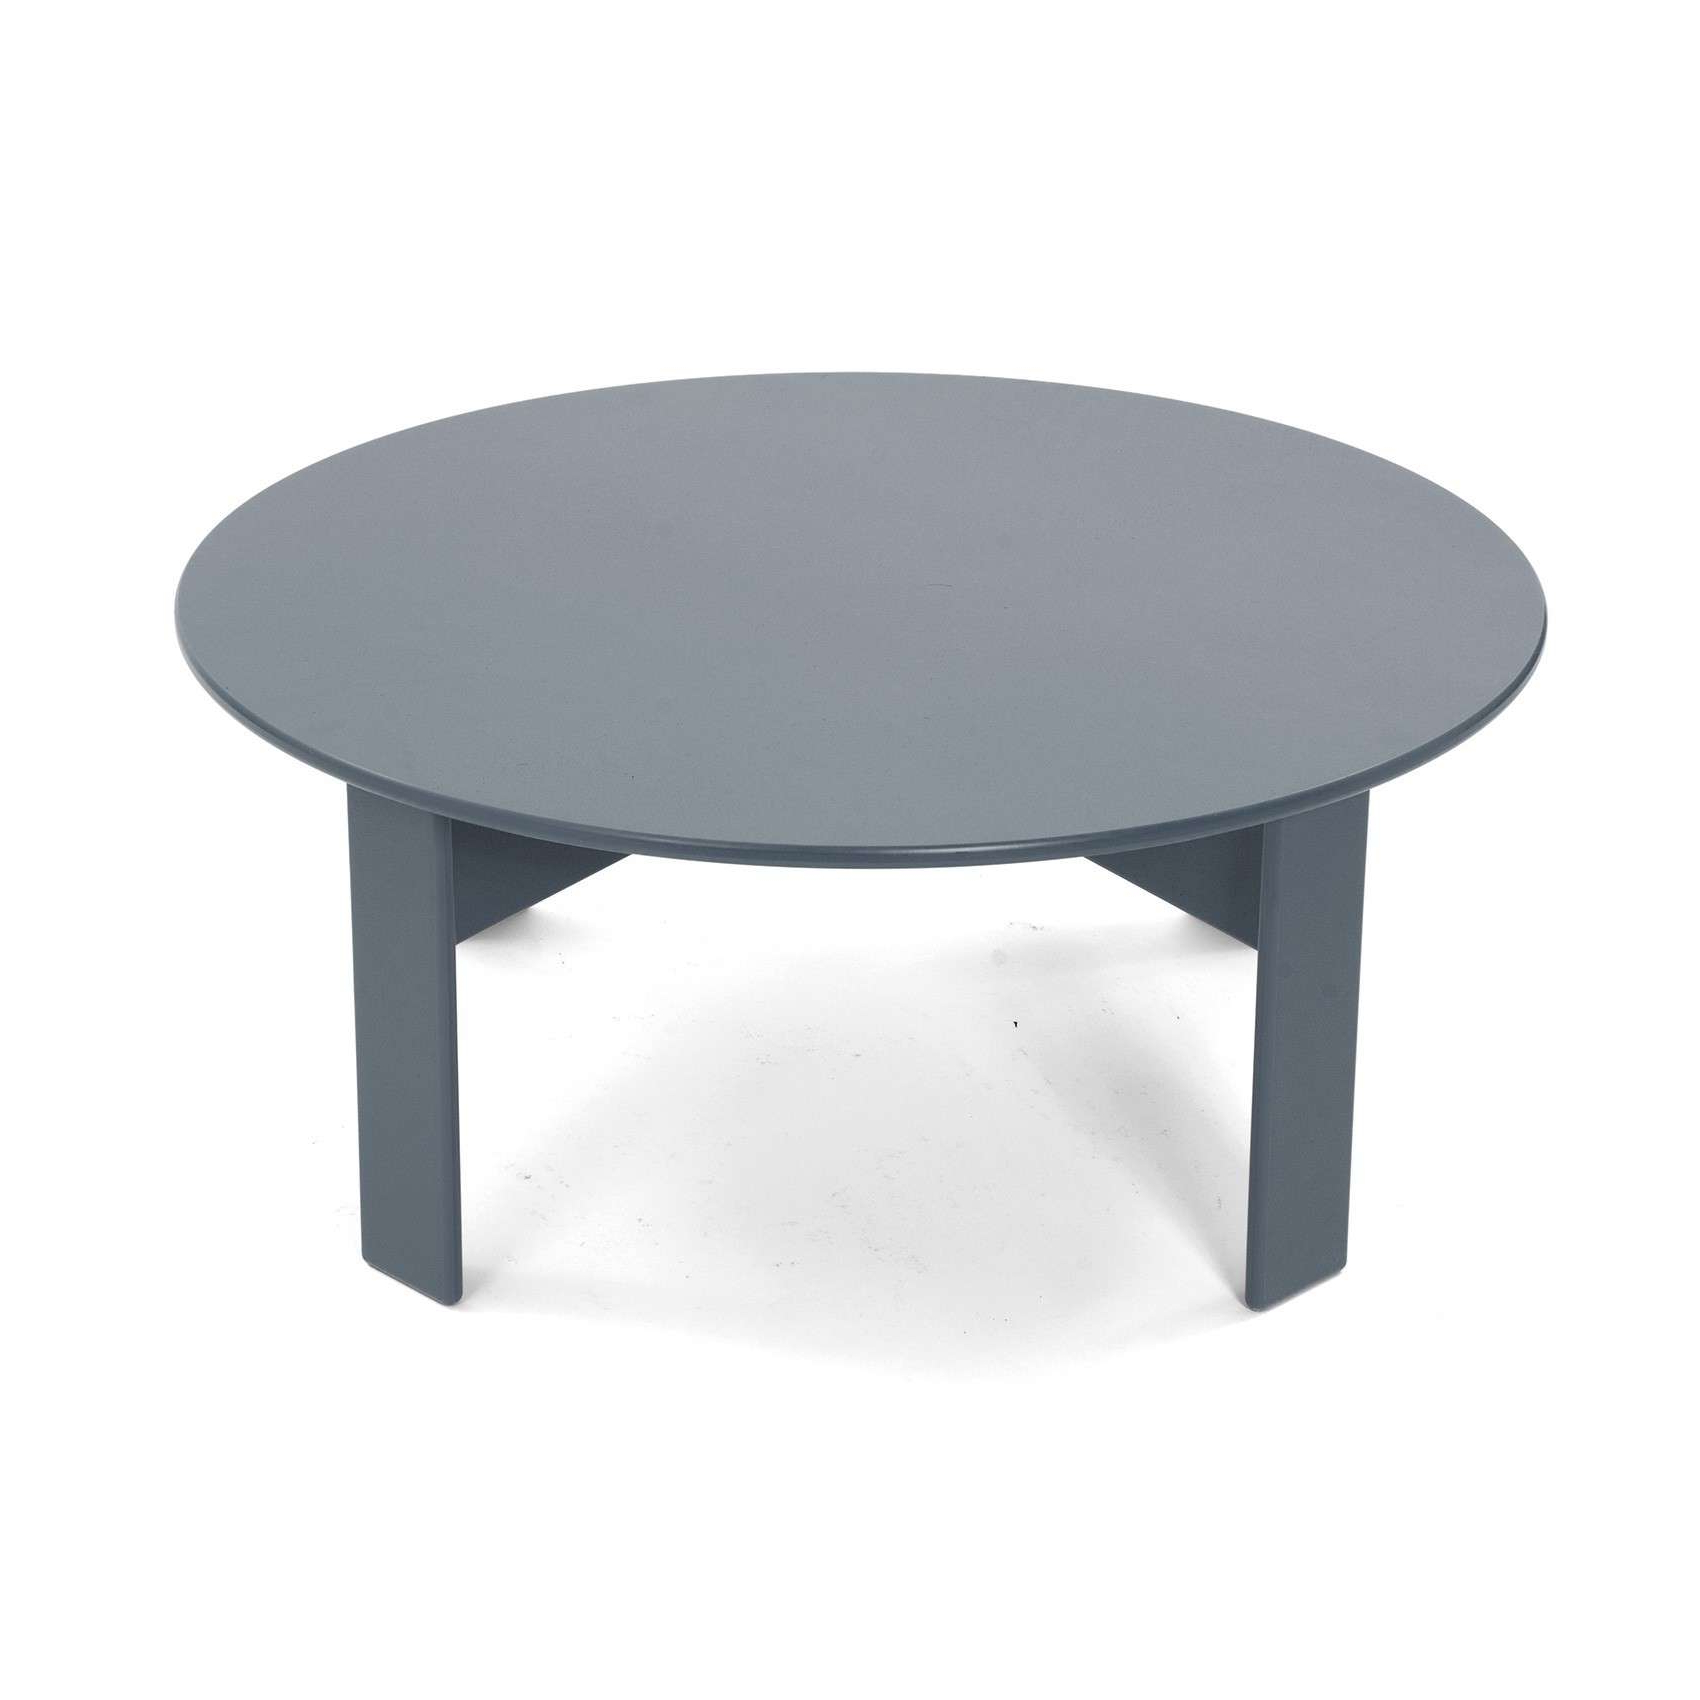 Cb2 Coffee Table – Coffee Drinker For Well Known Smart Round Marble Top Coffee Tables (View 4 of 20)